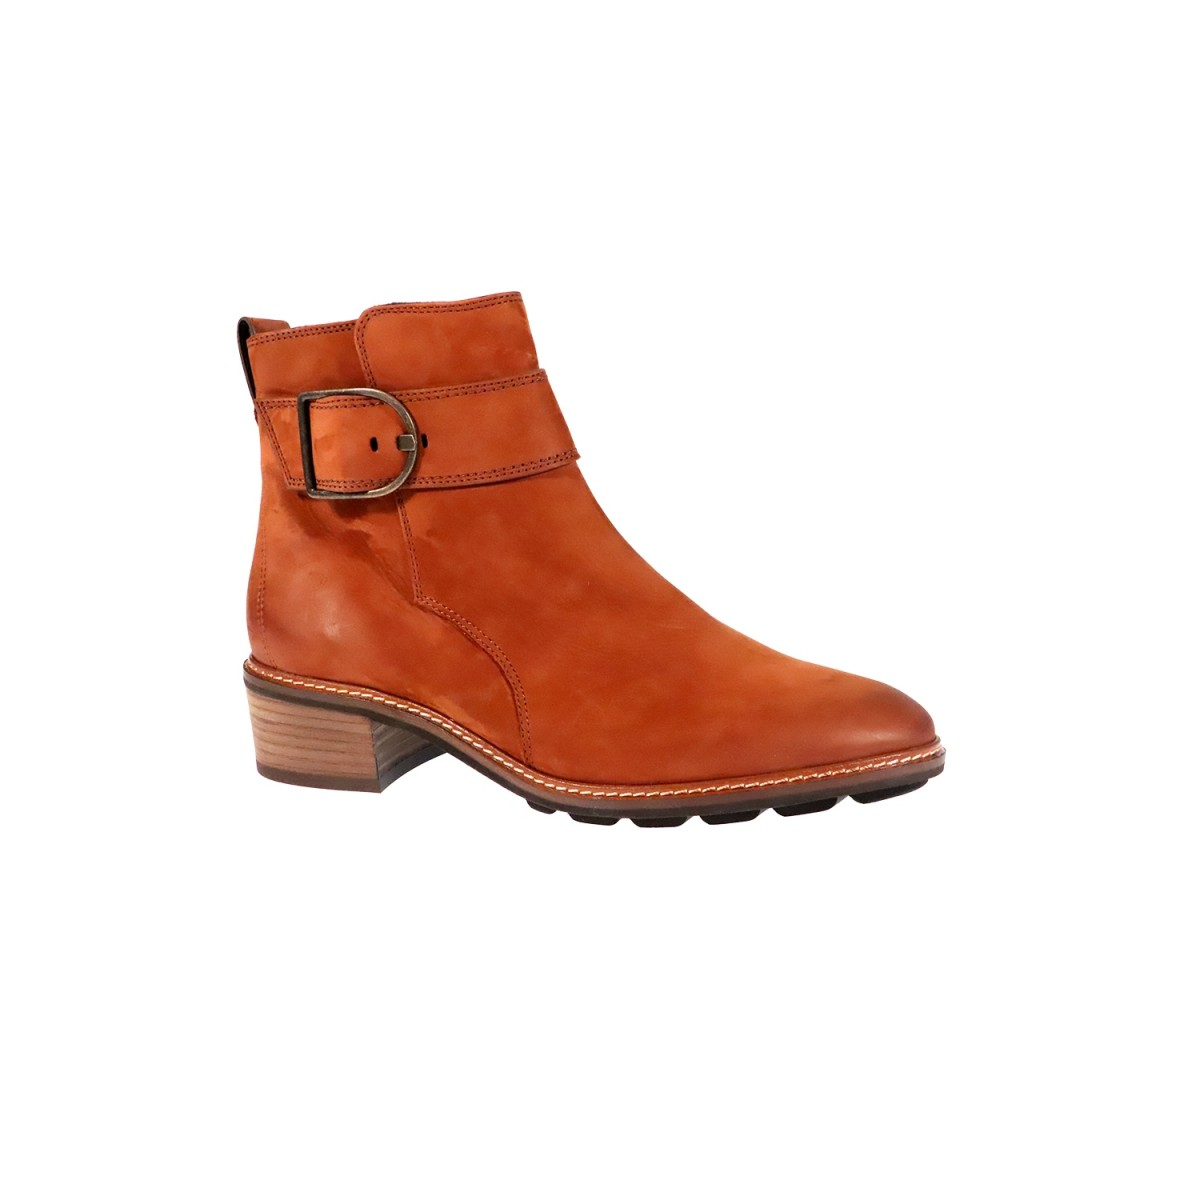 Paul Green 9576-01 Royal Nubuk Cognac-32